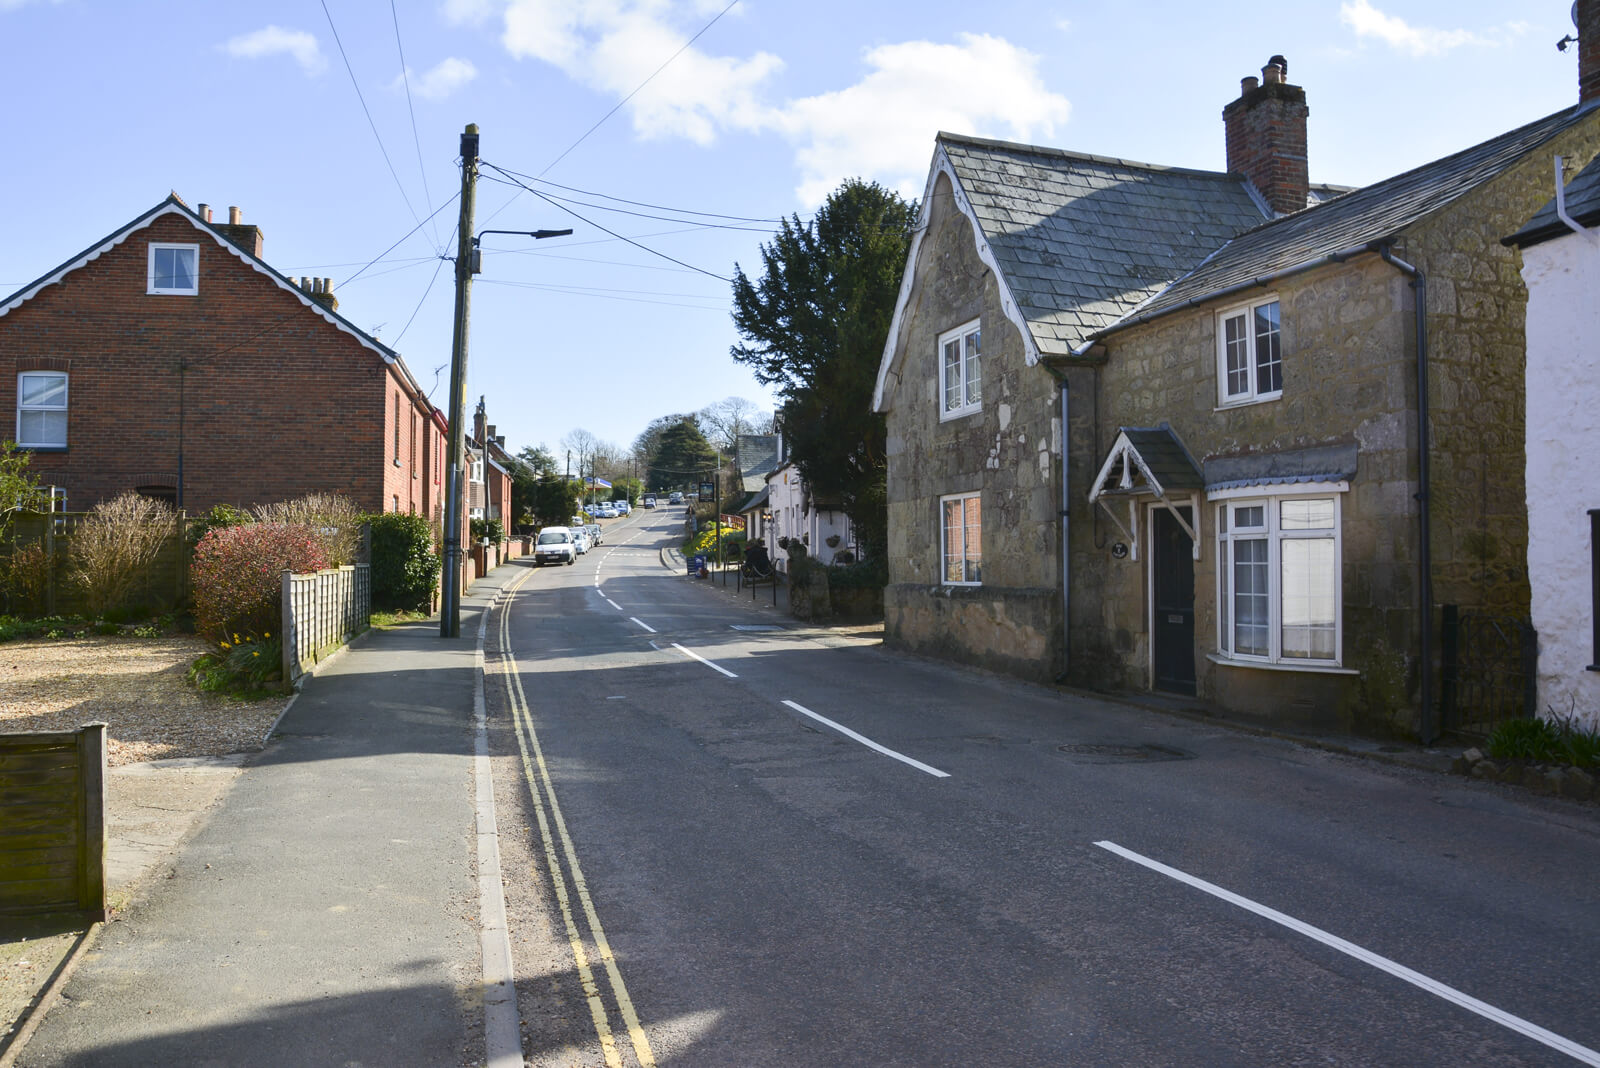 20150322 DSC_0517 Whitwell High Street Nother